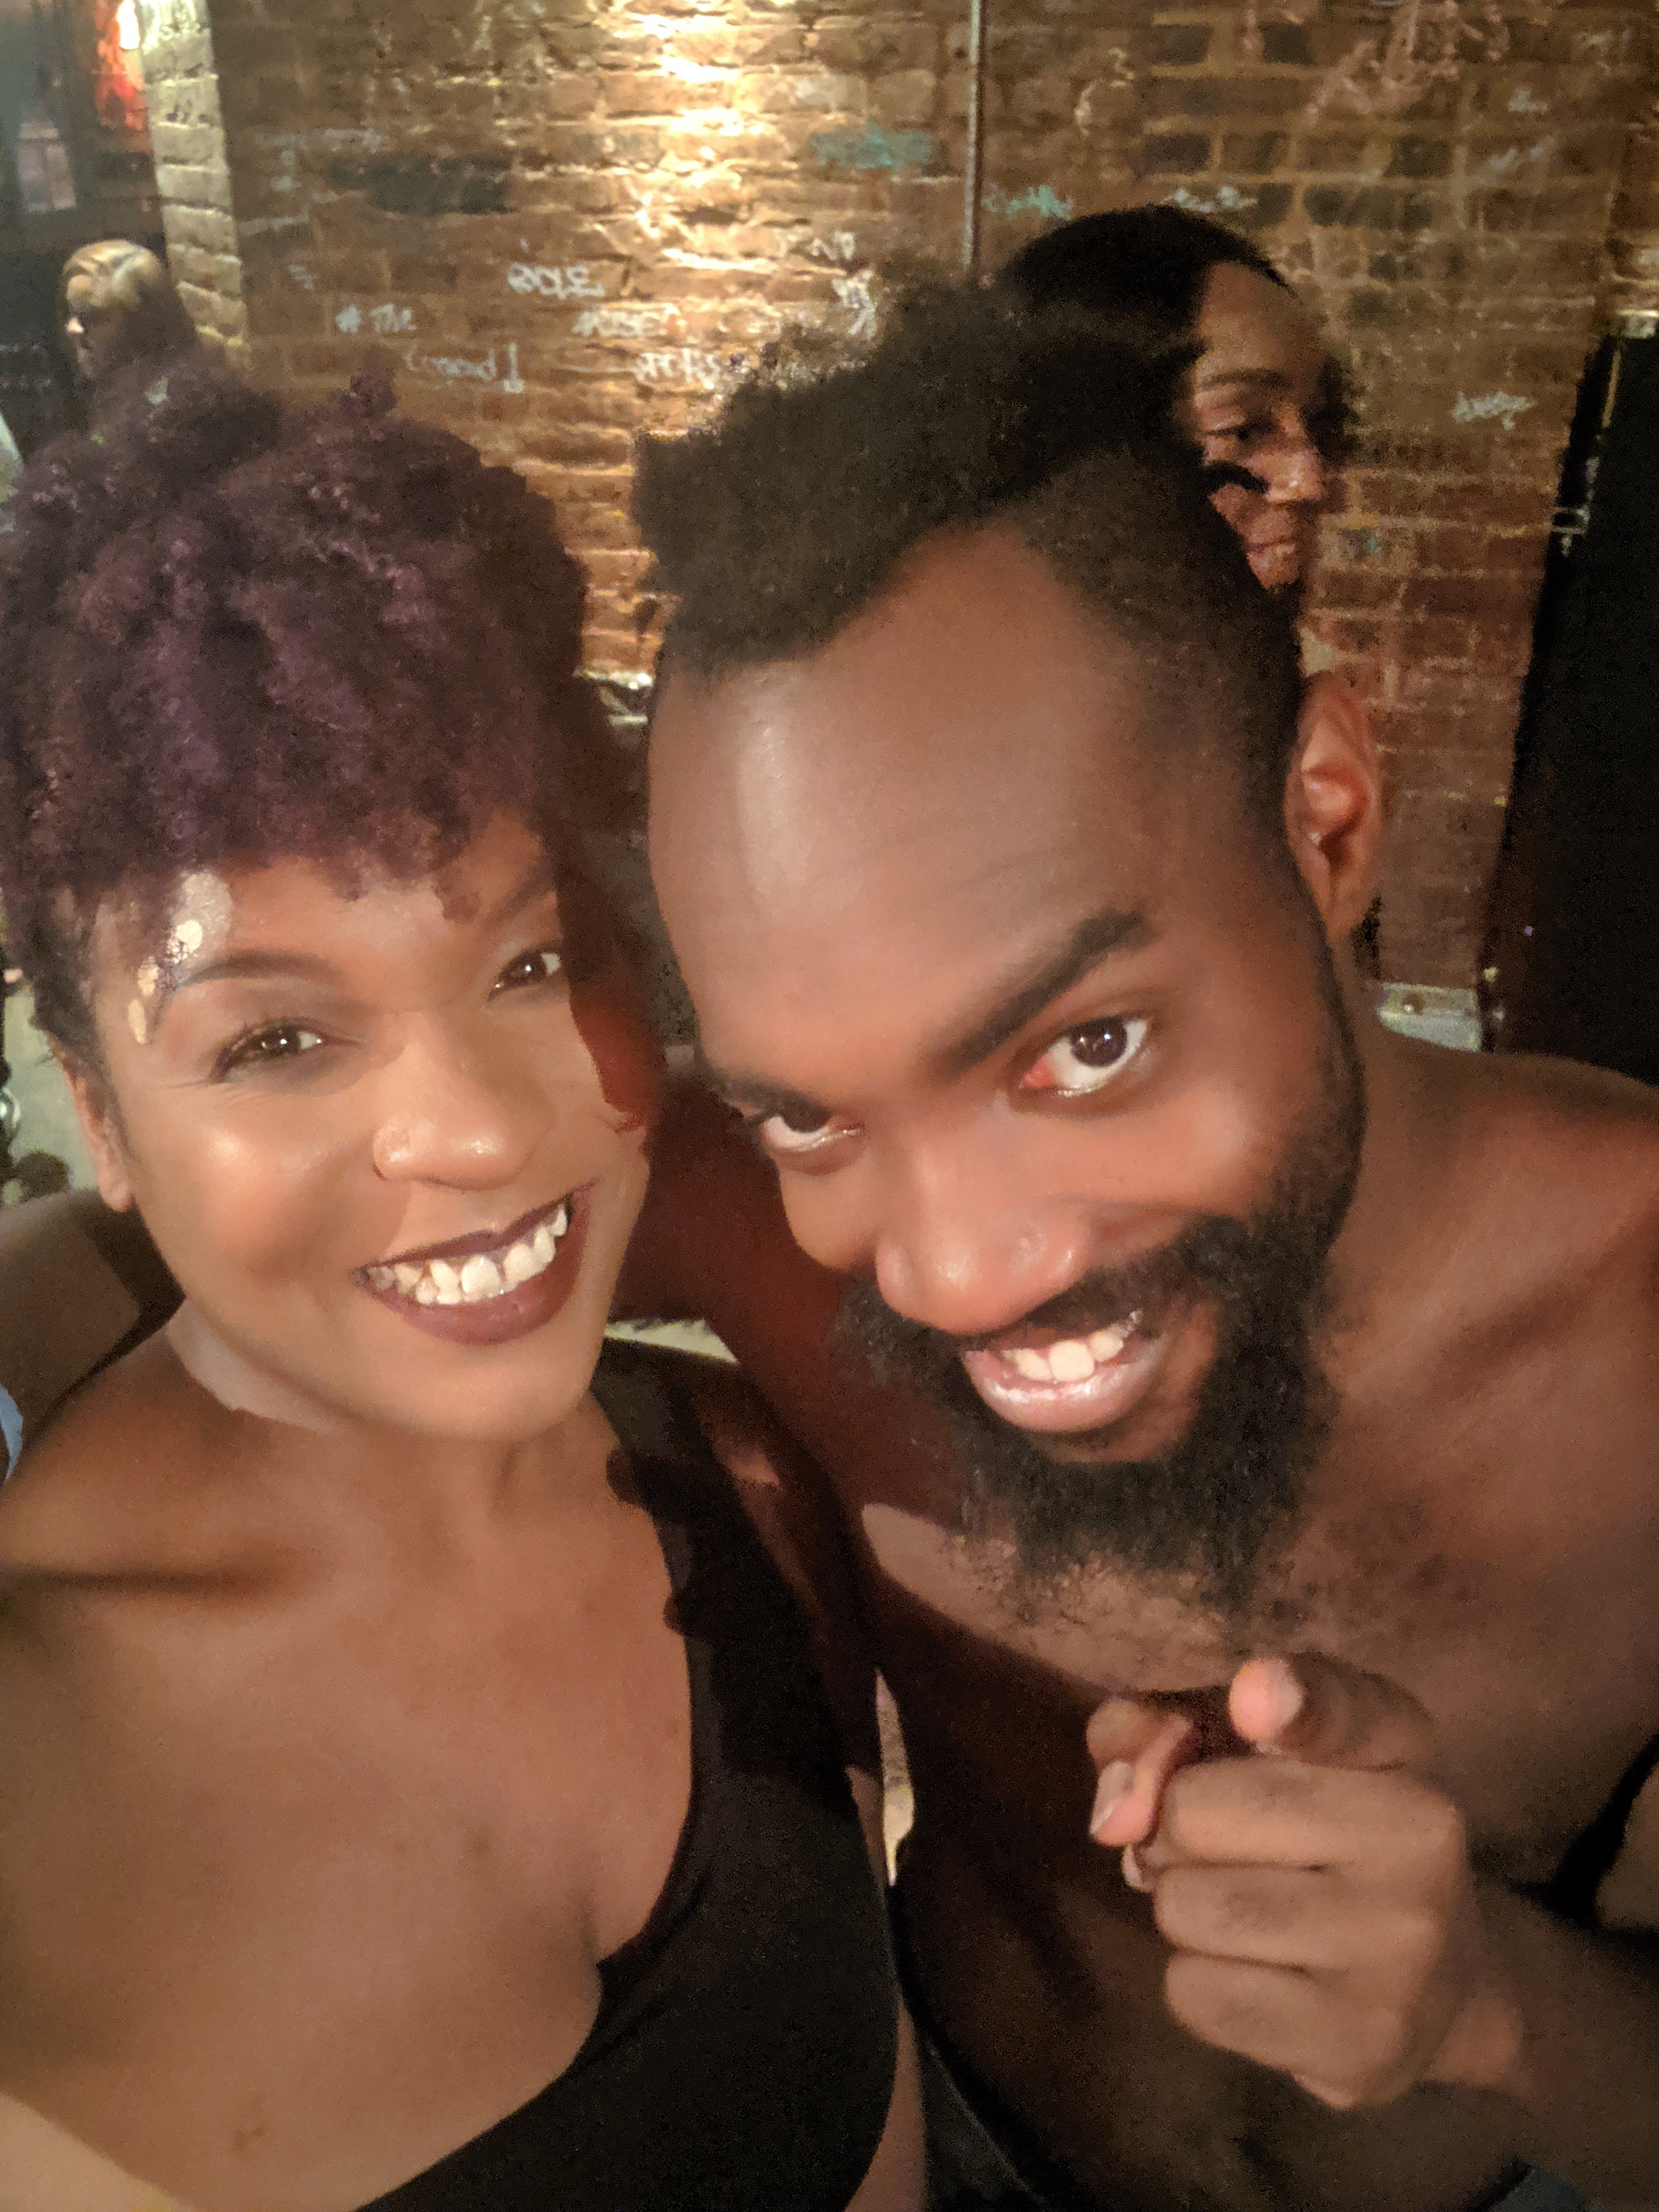 Writer Ajah Hales poses for a selfie with Bari Bass